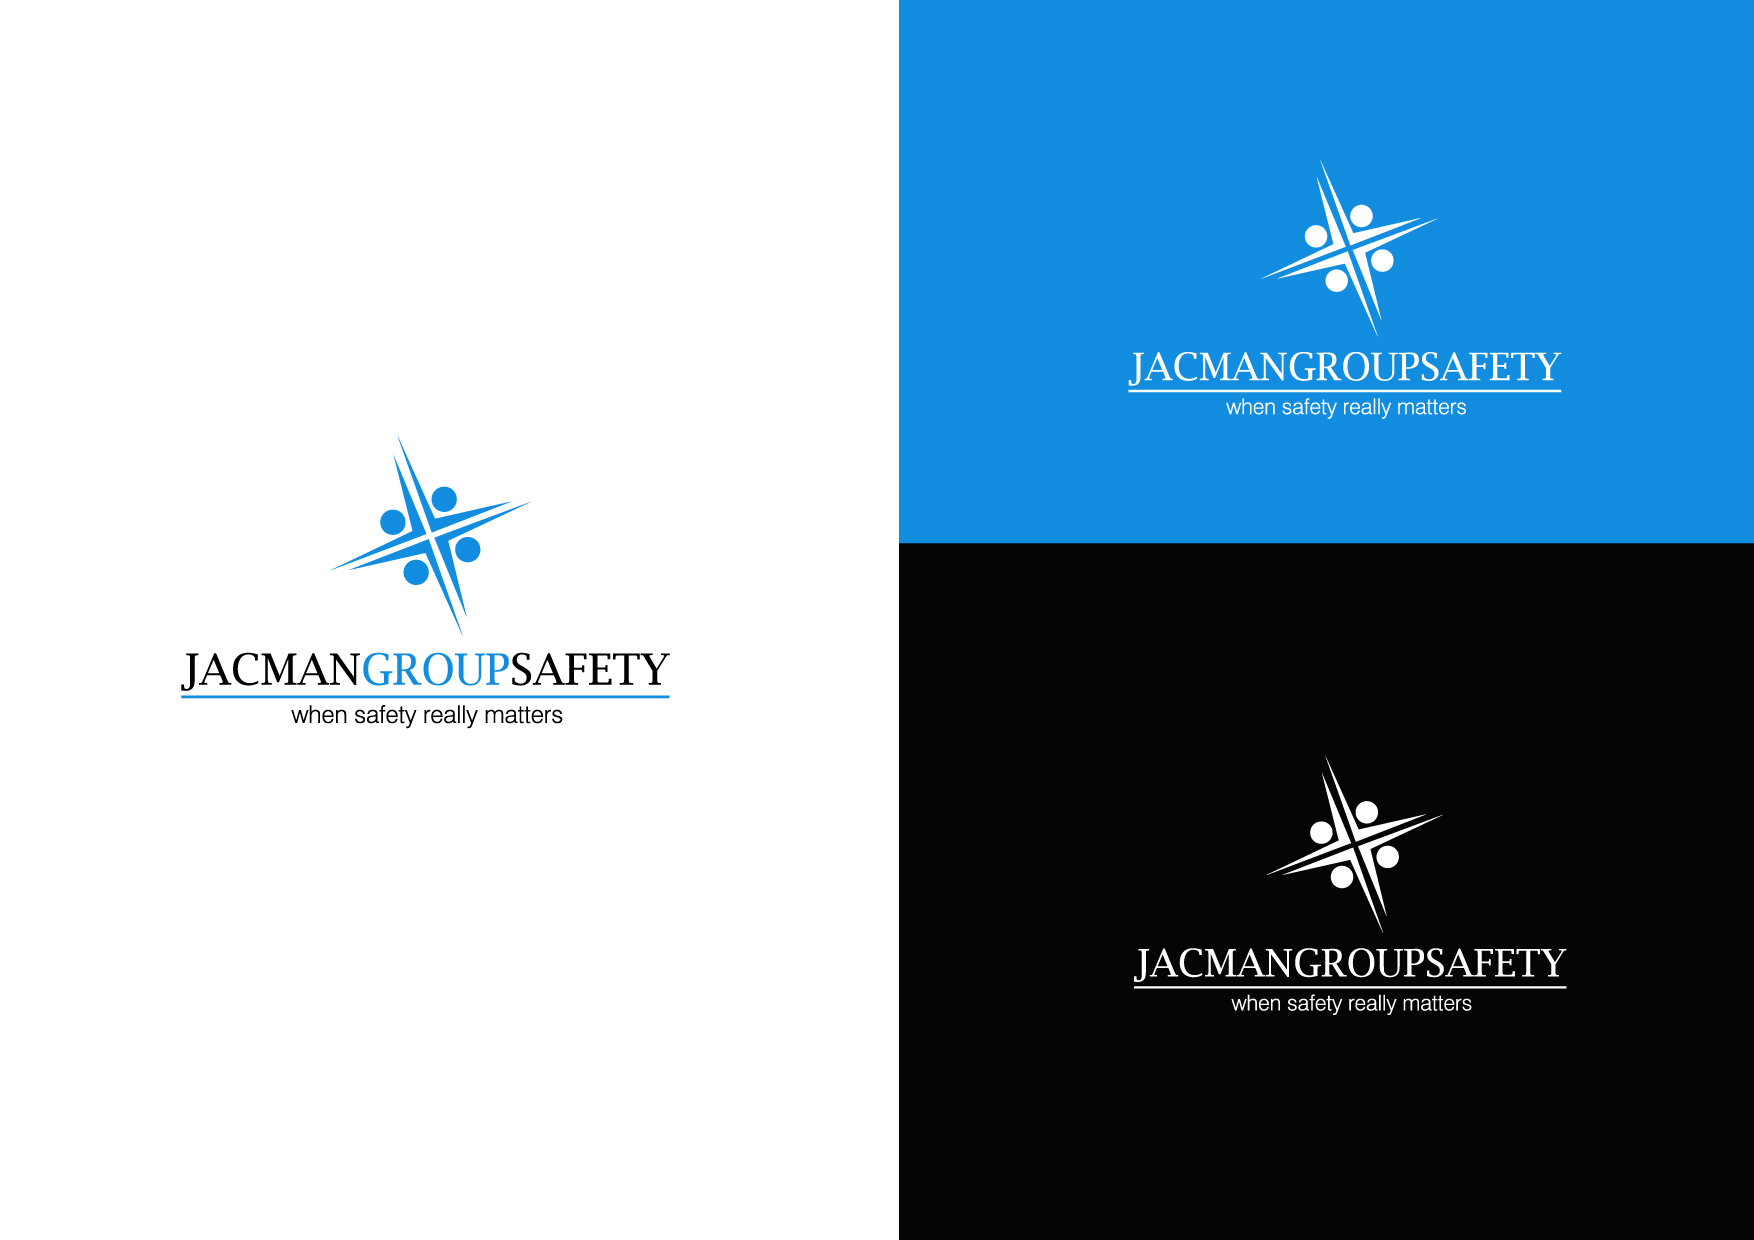 Logo Design by Osi Indra - Entry No. 61 in the Logo Design Contest The Jacman Group Logo Design.